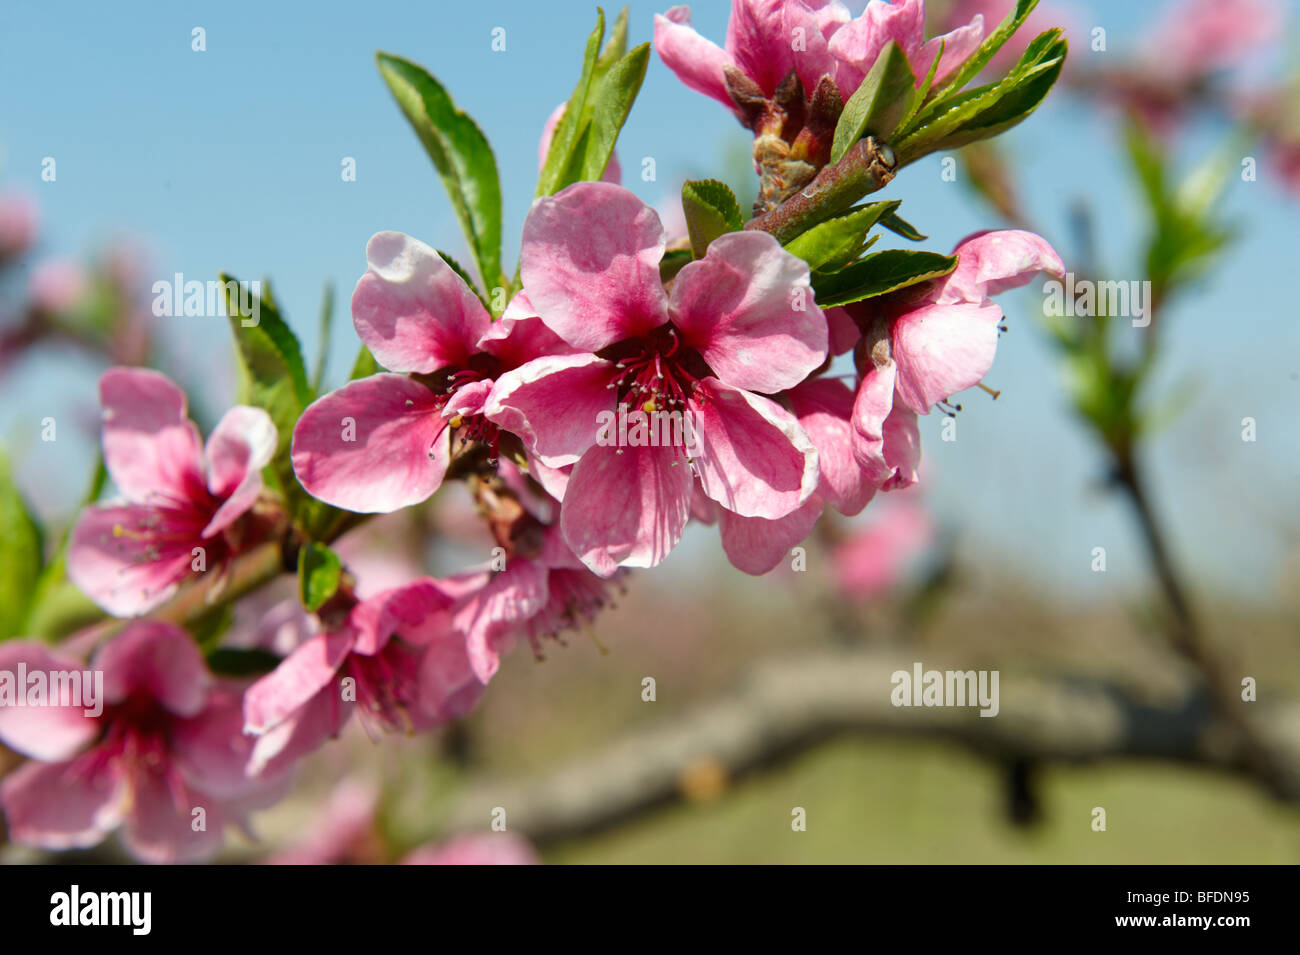 Pink apricot blossom on the tree, Koszeg, Hungary - Stock Image